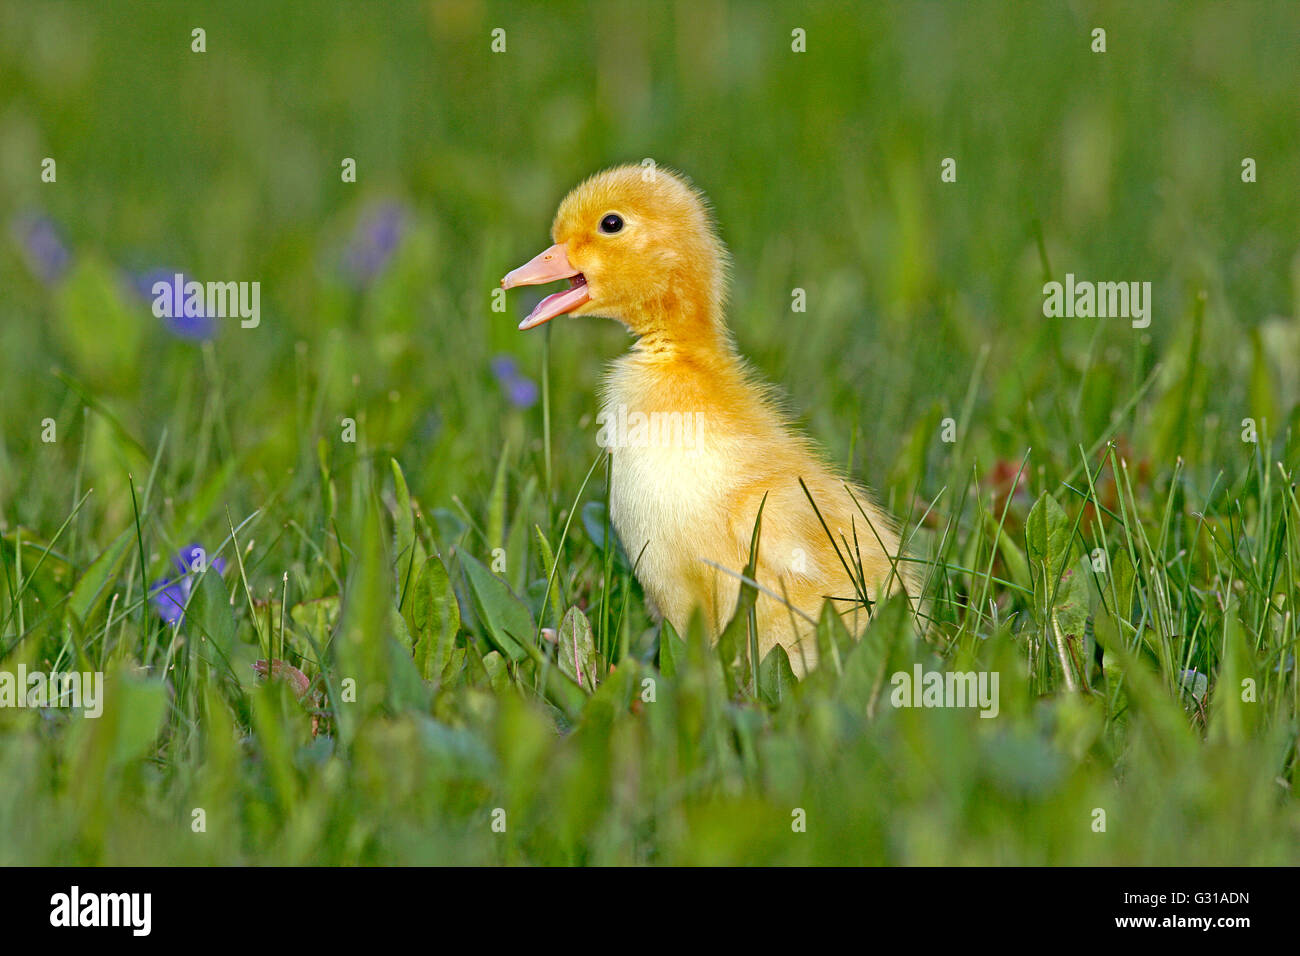 Duckling few days old, walking in grass with blue flowers - Stock Image